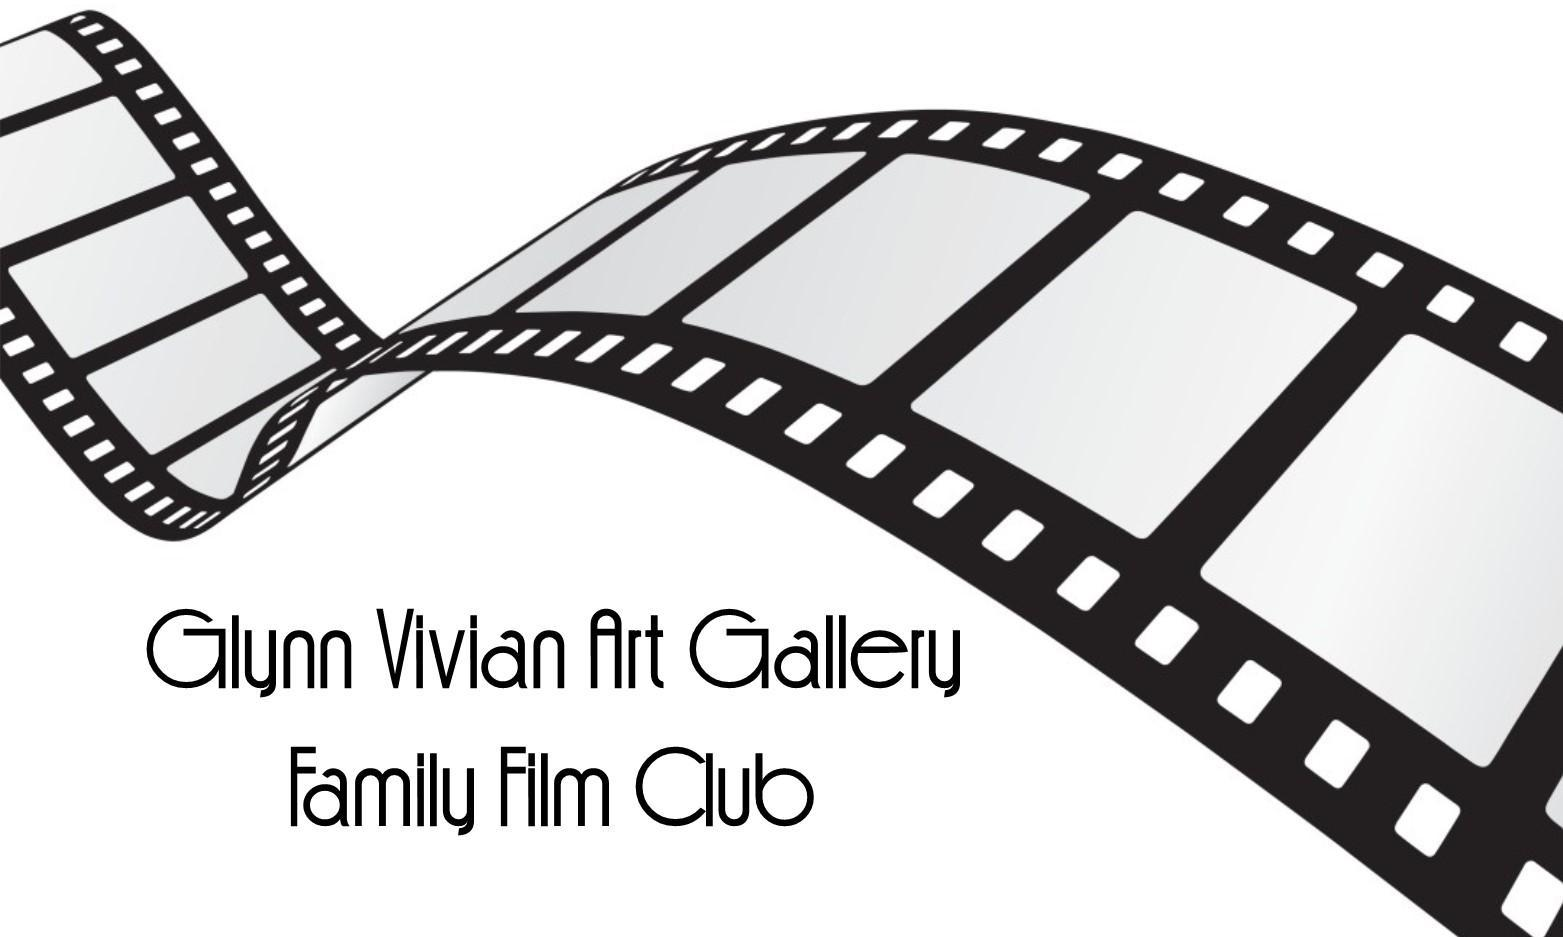 Whats on in Swansea Family Film Club at Glynn Vivian Art Gallery